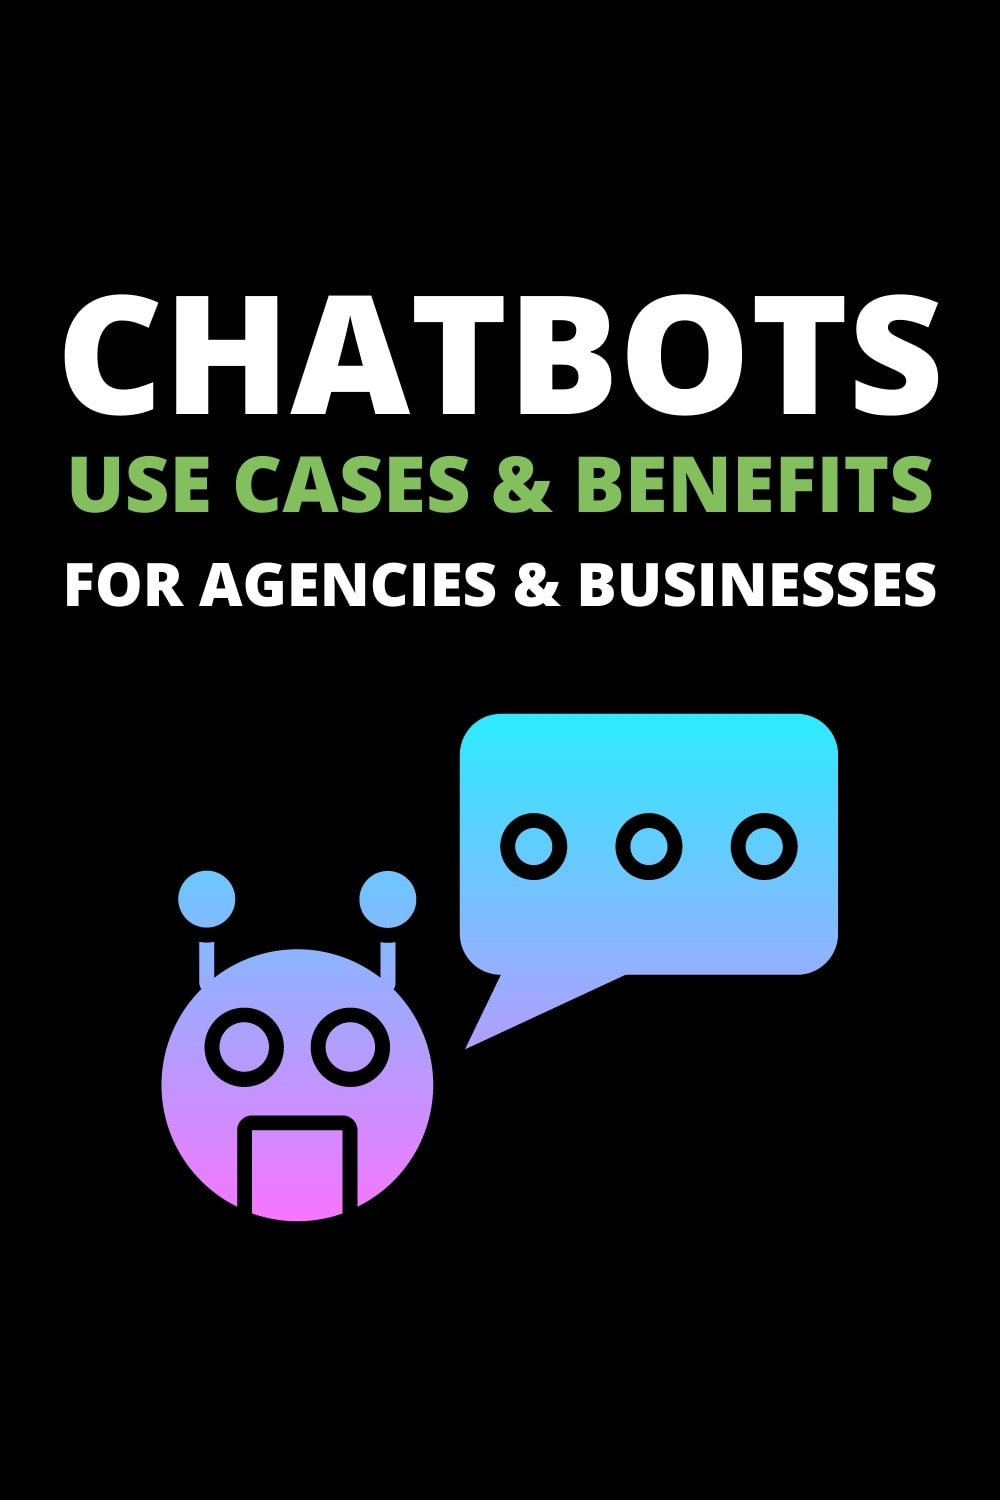 chatbot uses cases and benefits for agencies and businesses pinterest